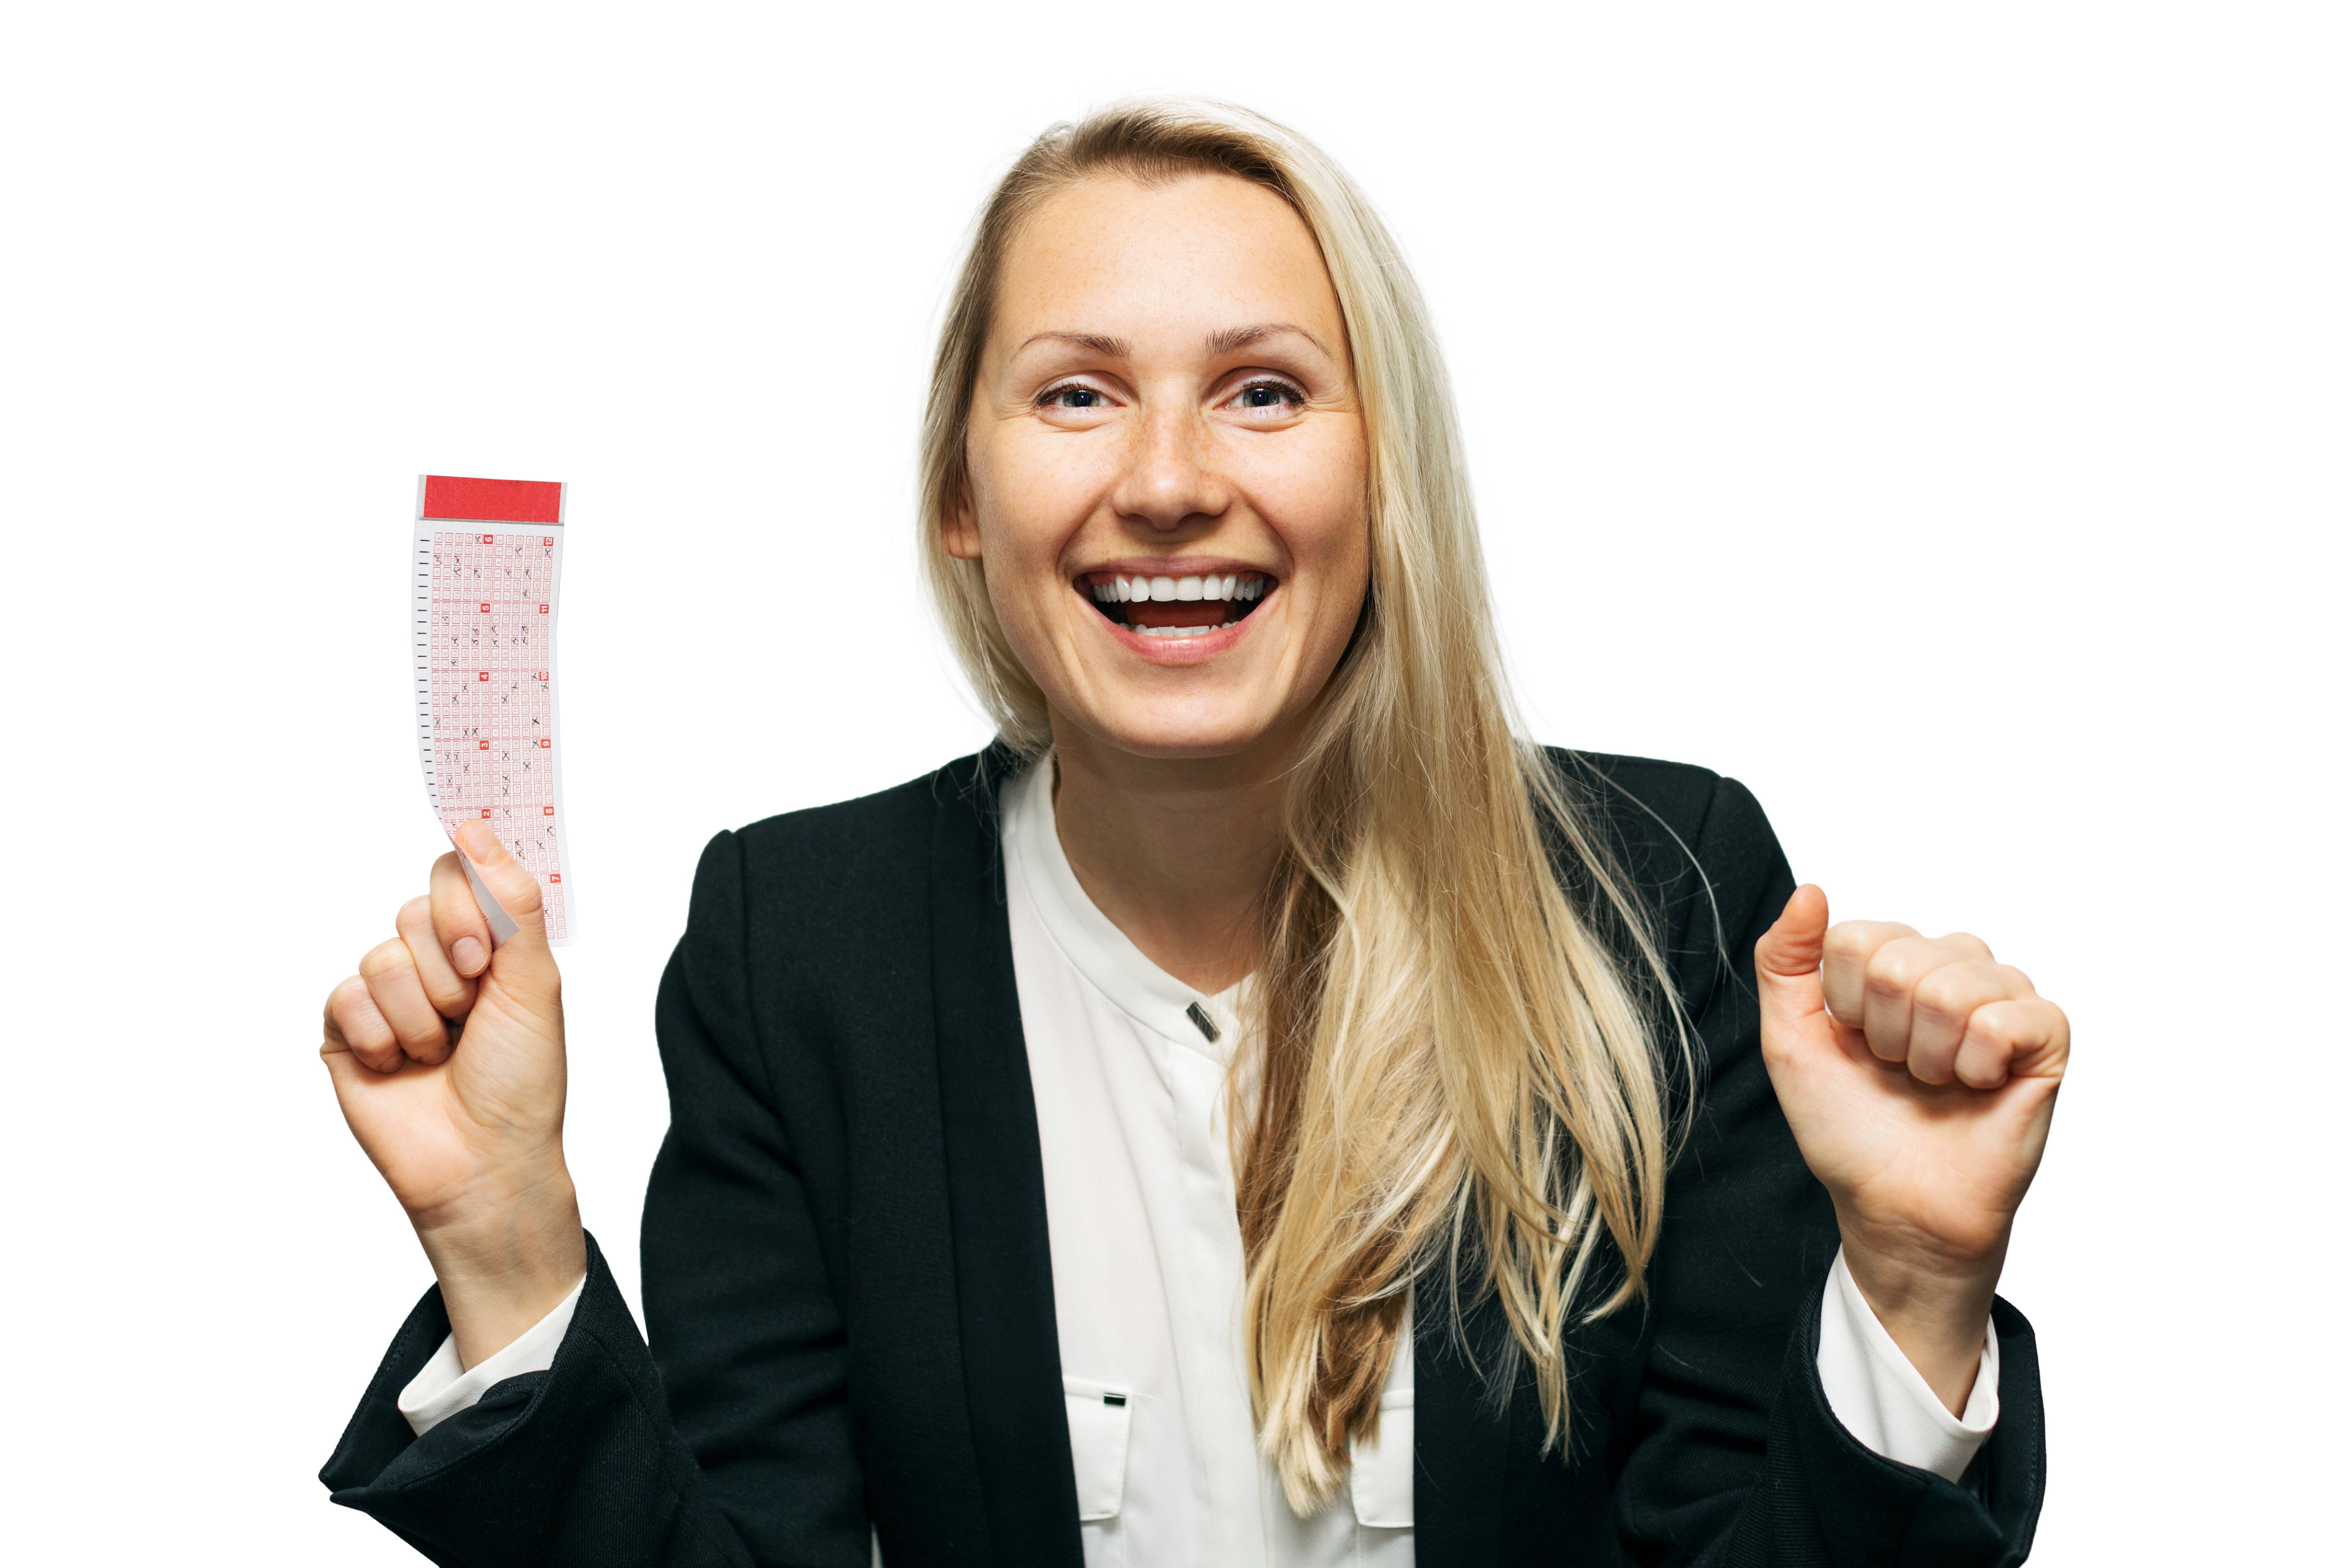 Ecstatic woman with a smile on her face holding a lottery ticket.  |  Photo: Shutterstock.